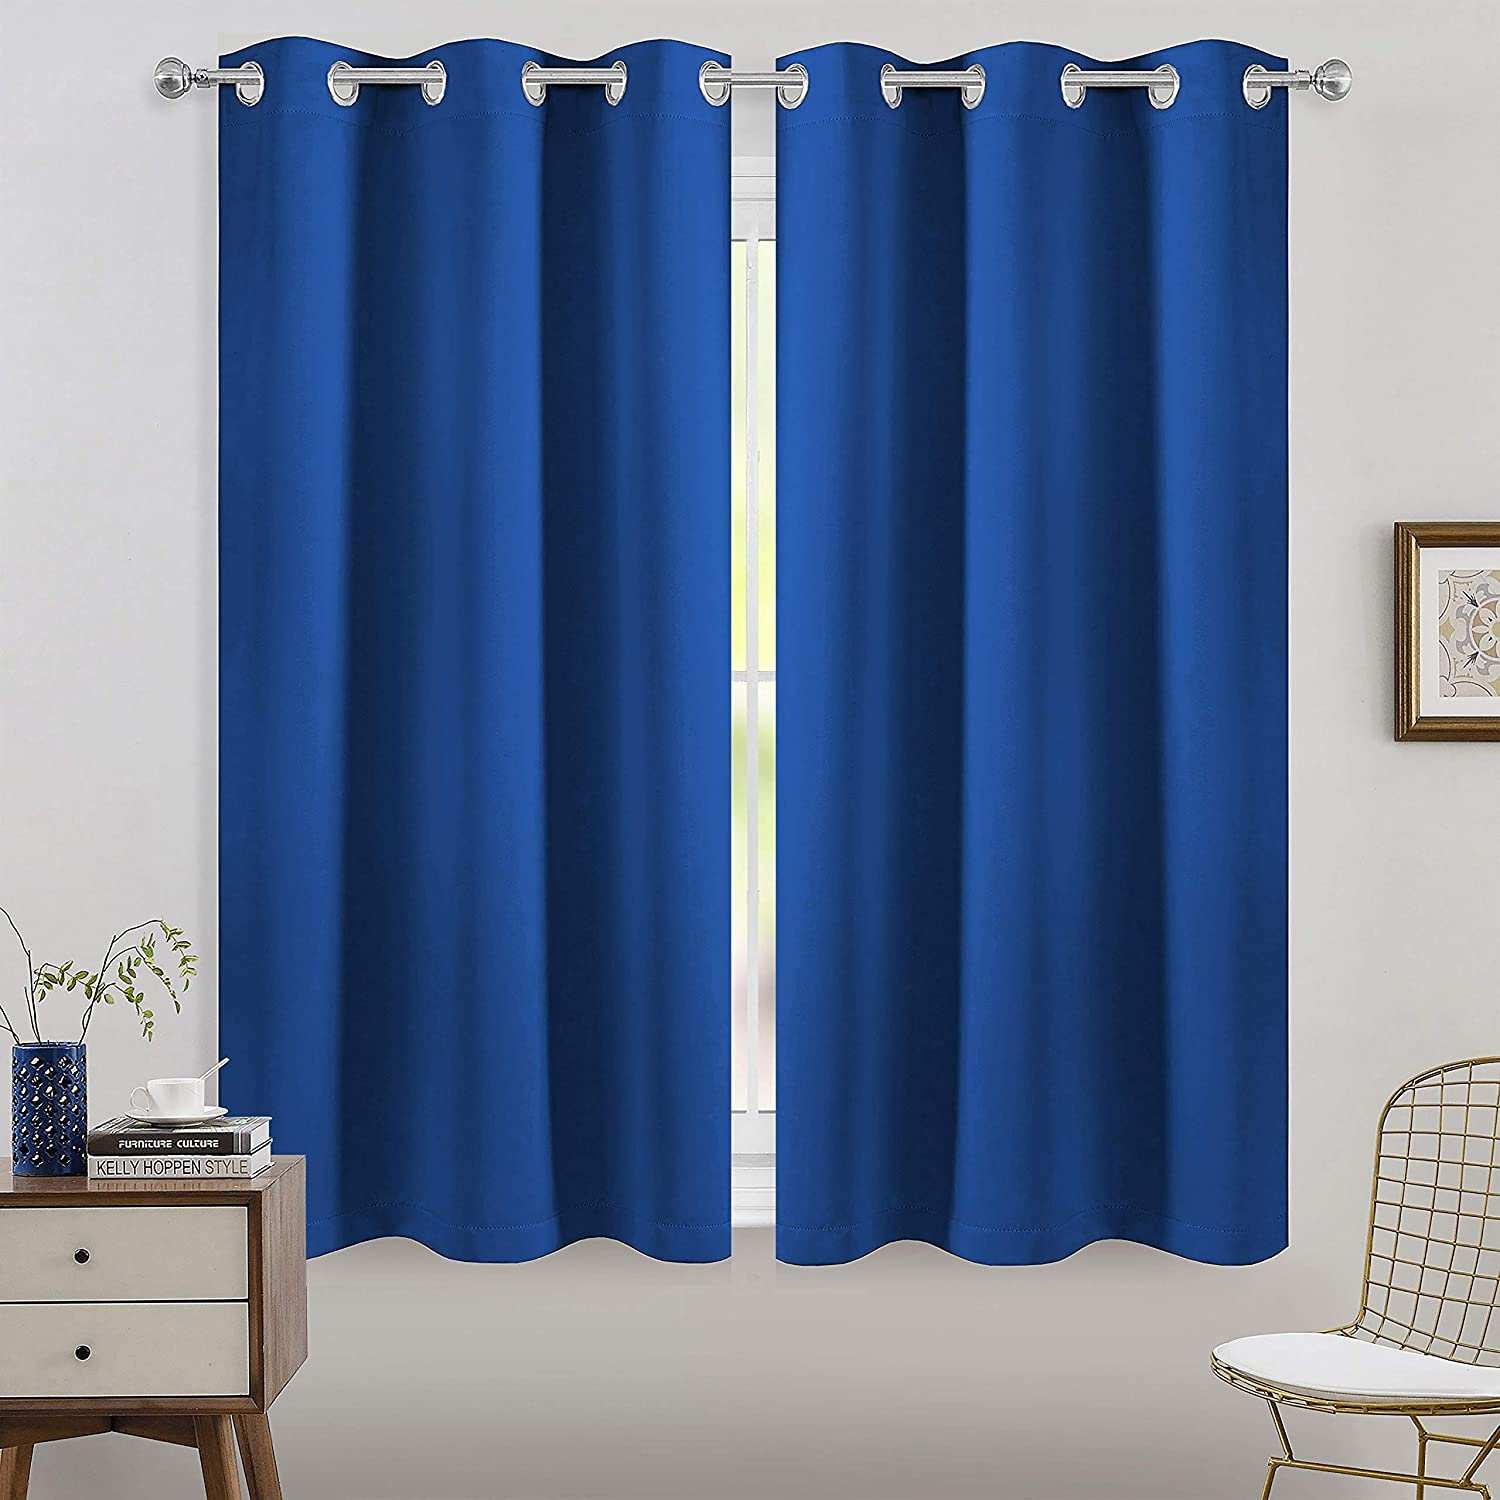 FLOWEROOM Room Darkening Blackout Curtains Thermal Insulated Draperies with Grommet for Living Room, Royal Blue, 42 x 45 inch, 2 Panels